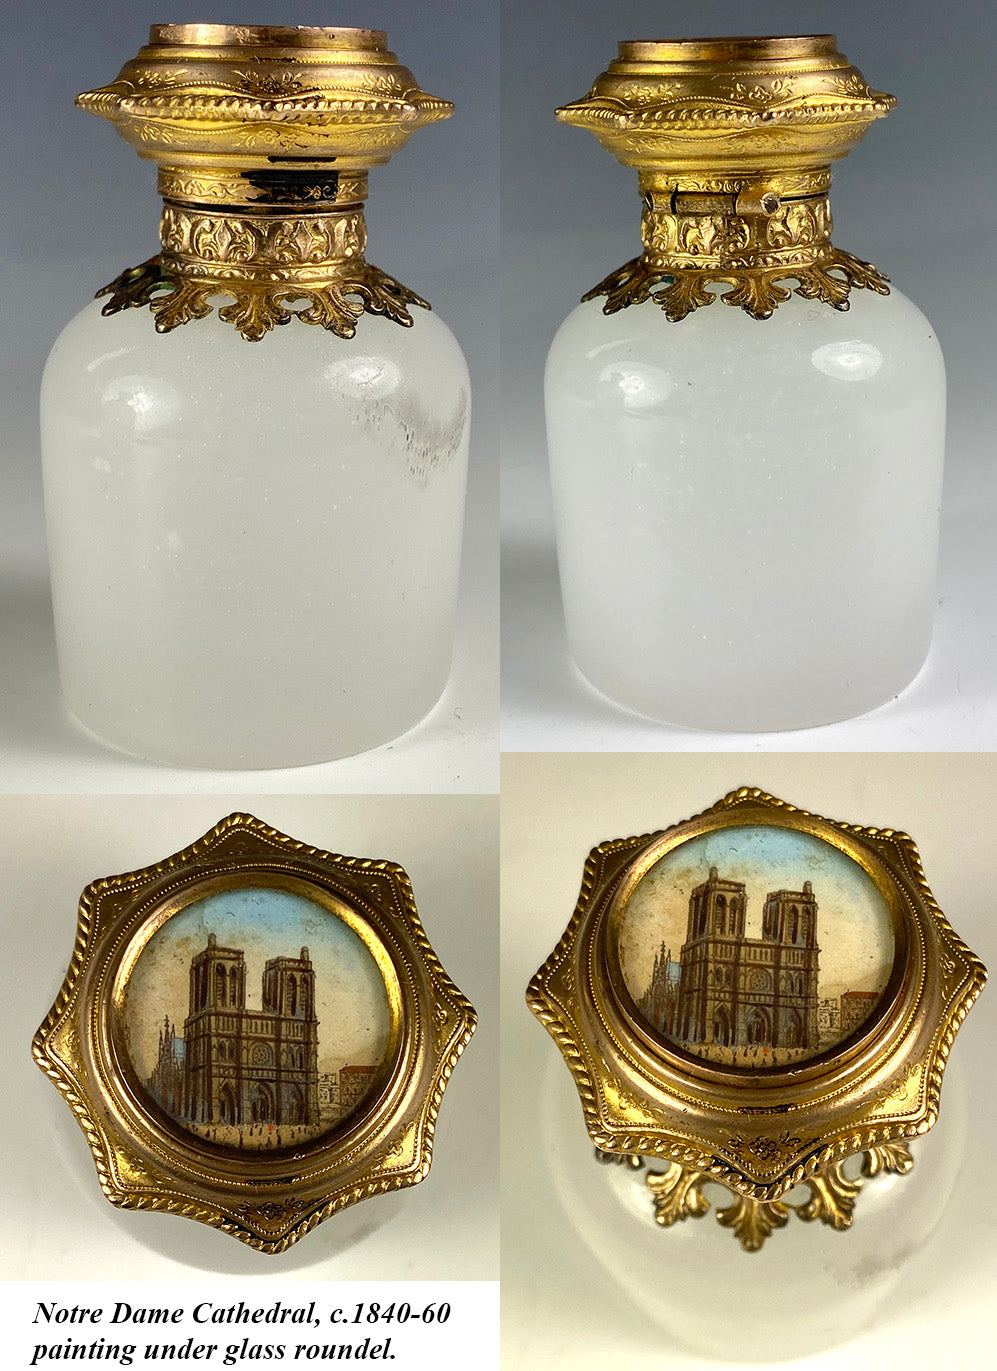 Antique French White Opaline Perfume or Cologne Bottle, Grand Tour Souvenir Eglomise, Notre Dame